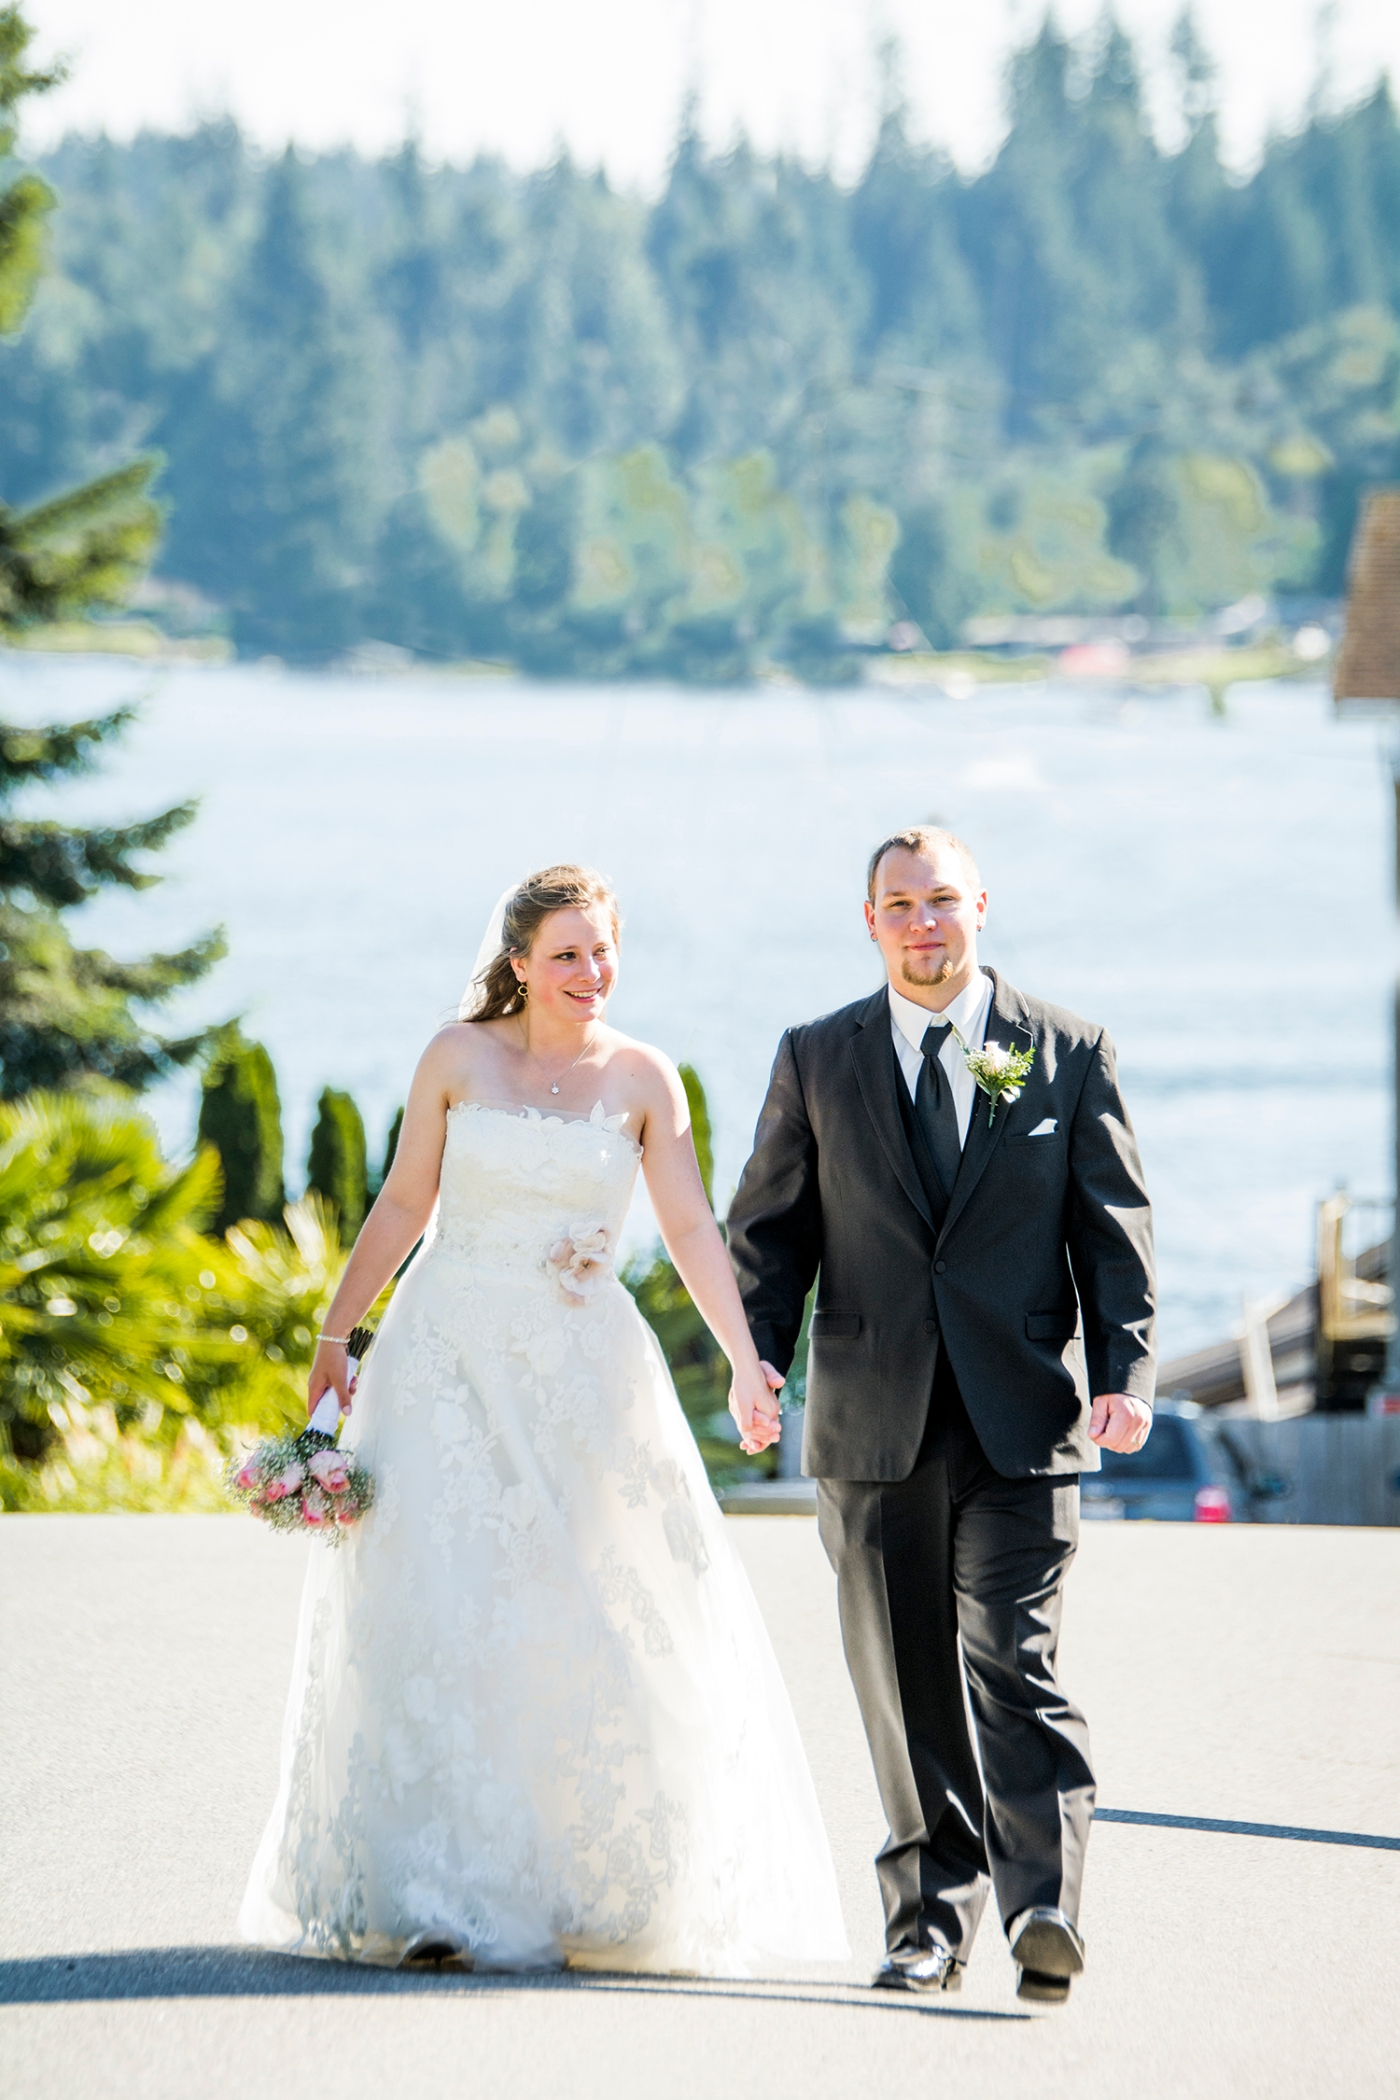 JaneS_photography_Seattle_2016_Kelsie_and_Kody_JS7_8620